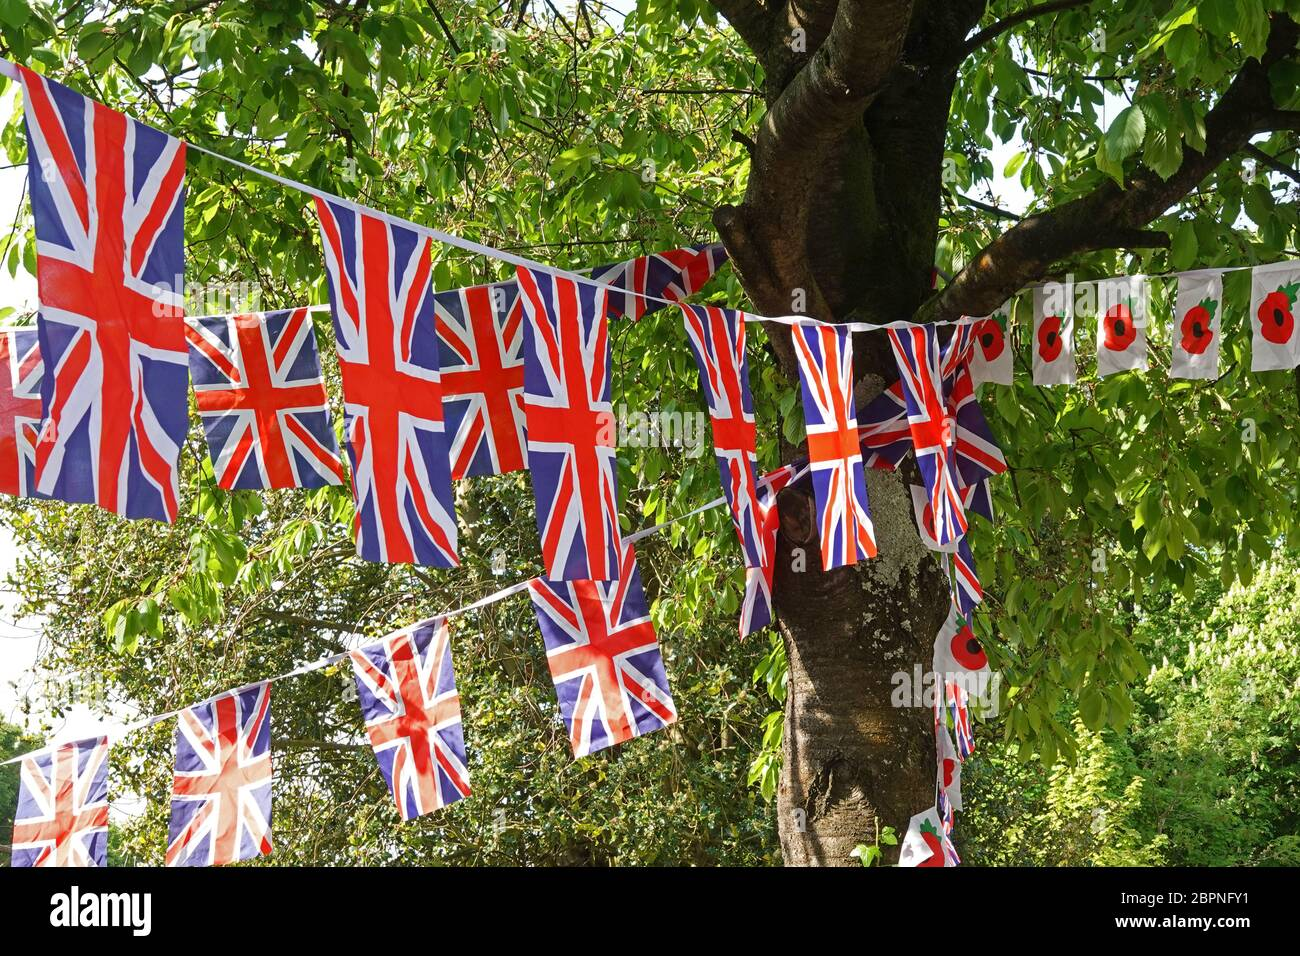 Football National Team Flags Scroll Banner England France Spain Bunting Wall UK